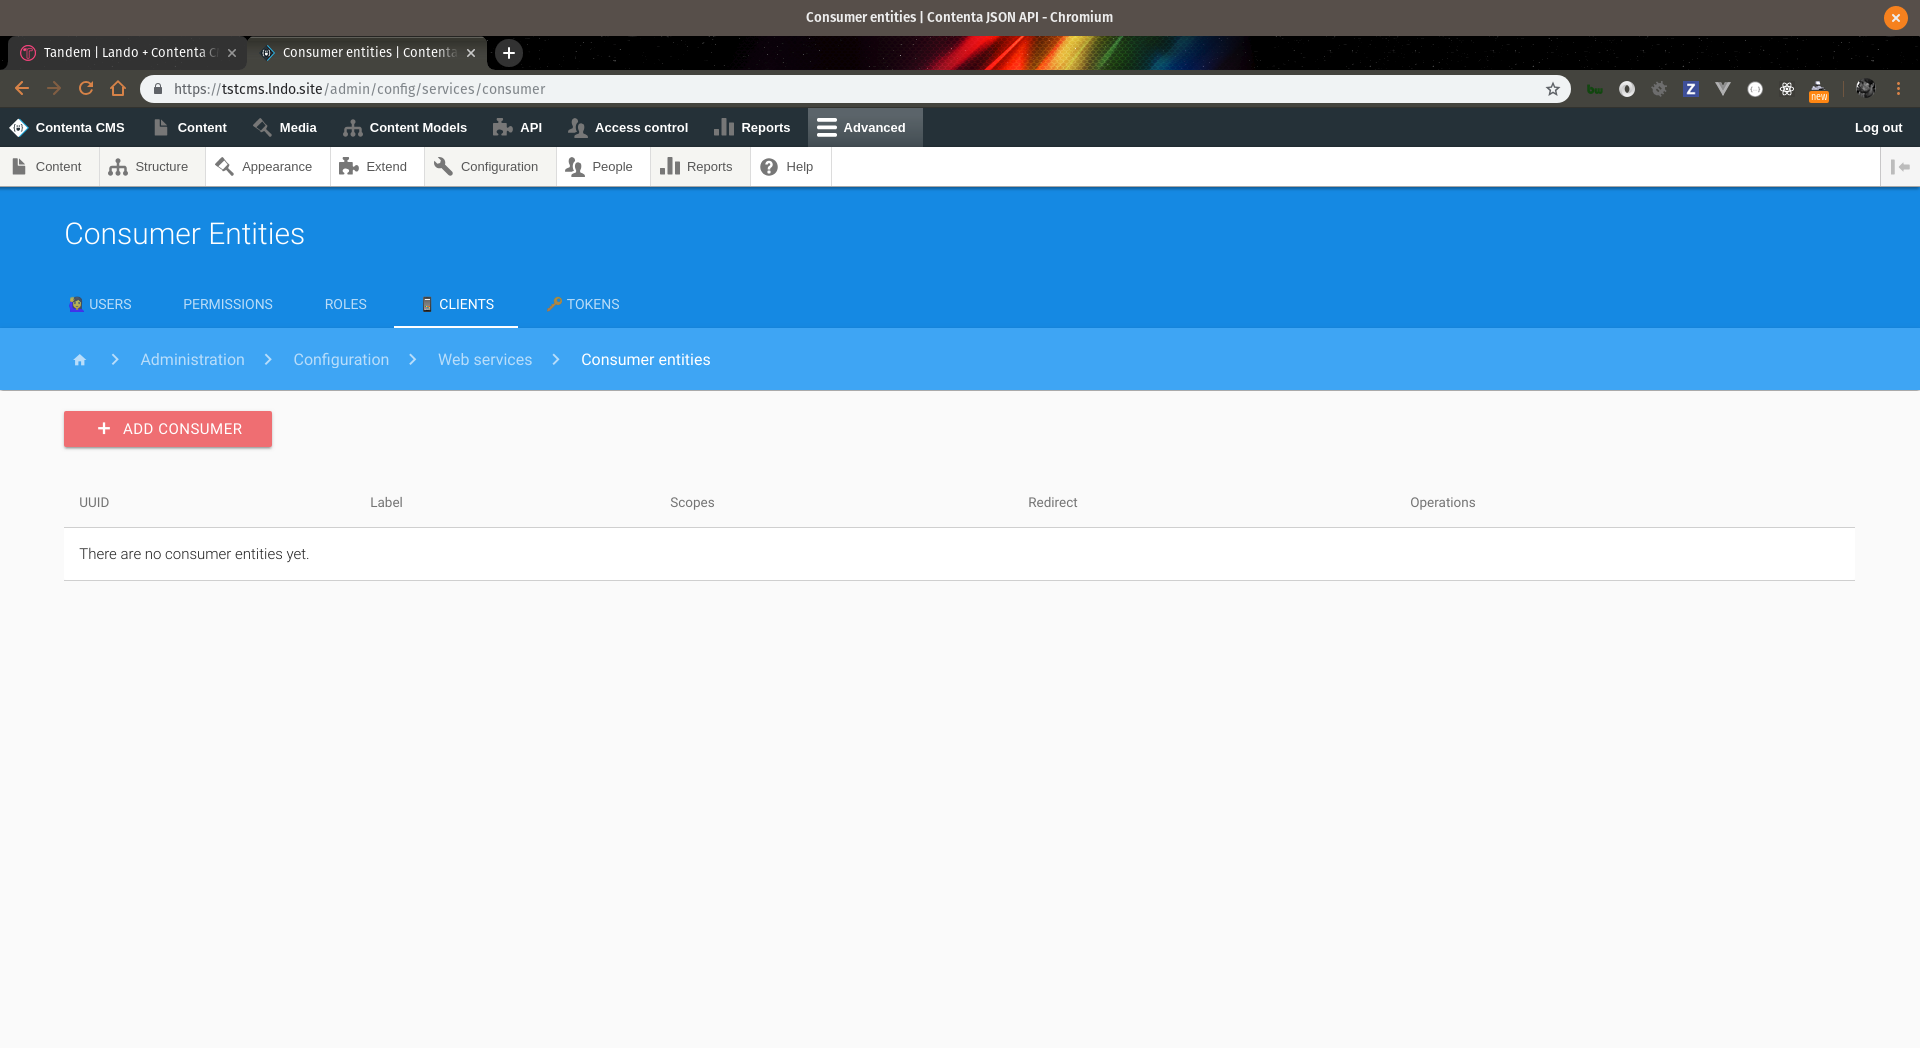 Screeenshot of add consumer configuration page